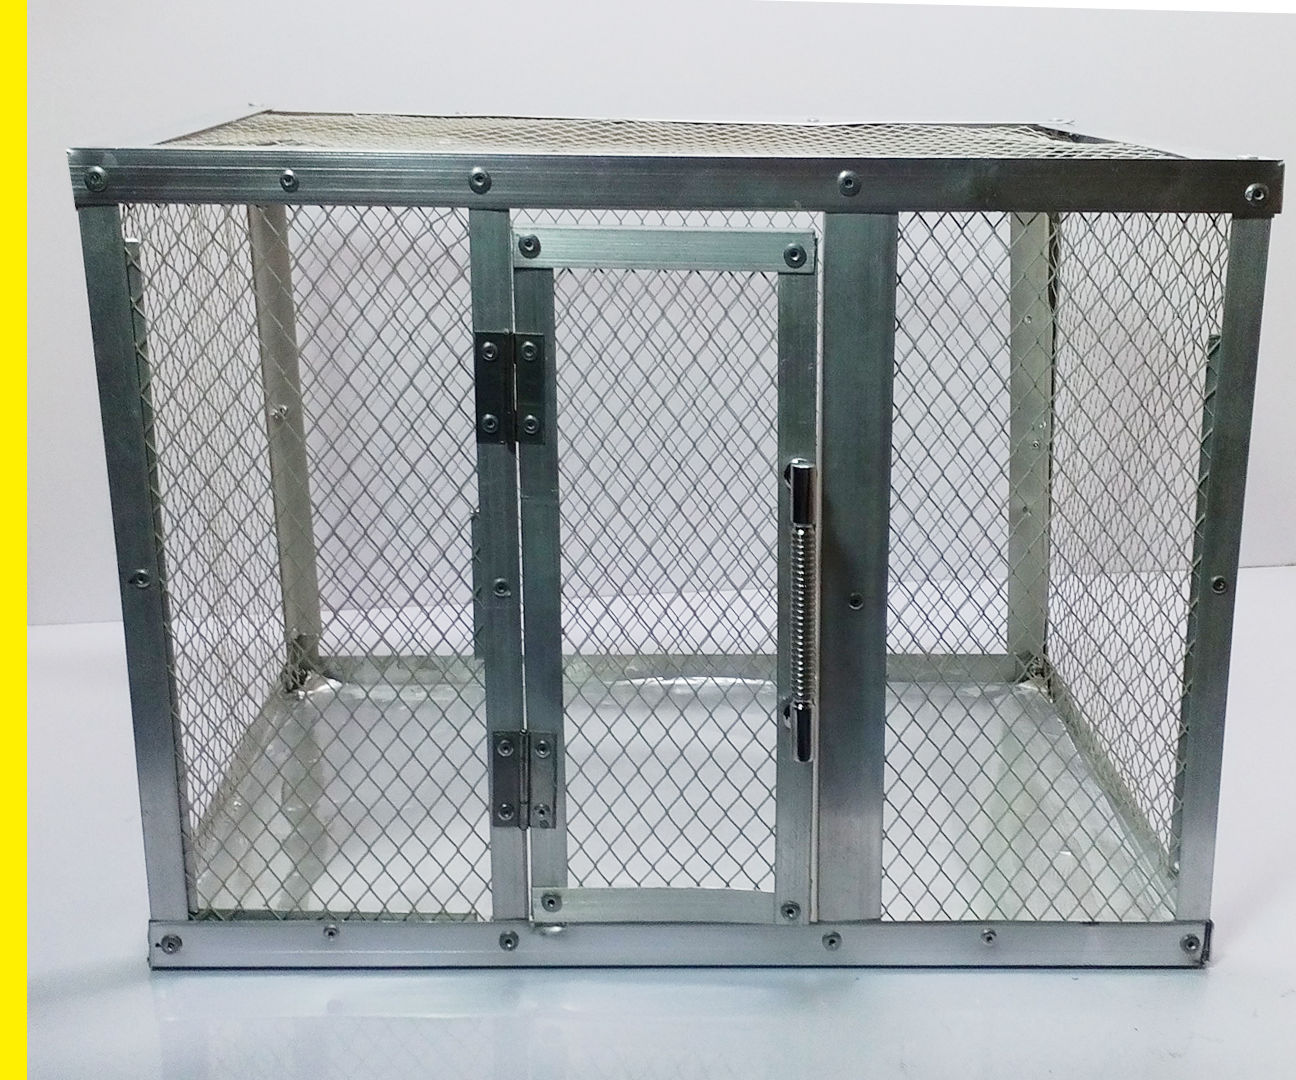 How to Make Cage for Birds at Home